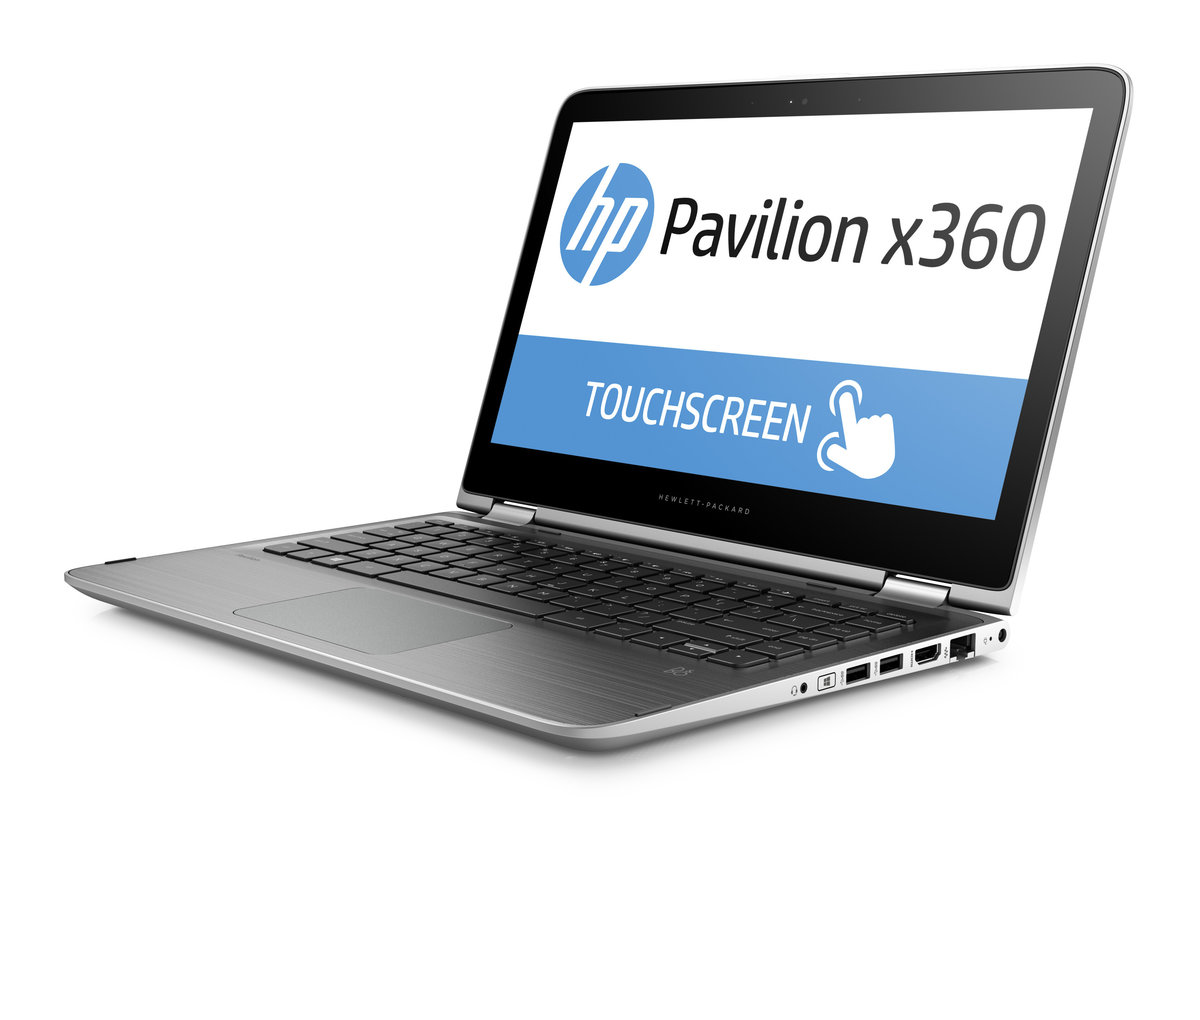 Hp Pavilion X360 13 S161nr 3 Convertible 2 In 1 Laptop Touchscreen 4 Gb Ram Windows 10 Natural Silver Staples